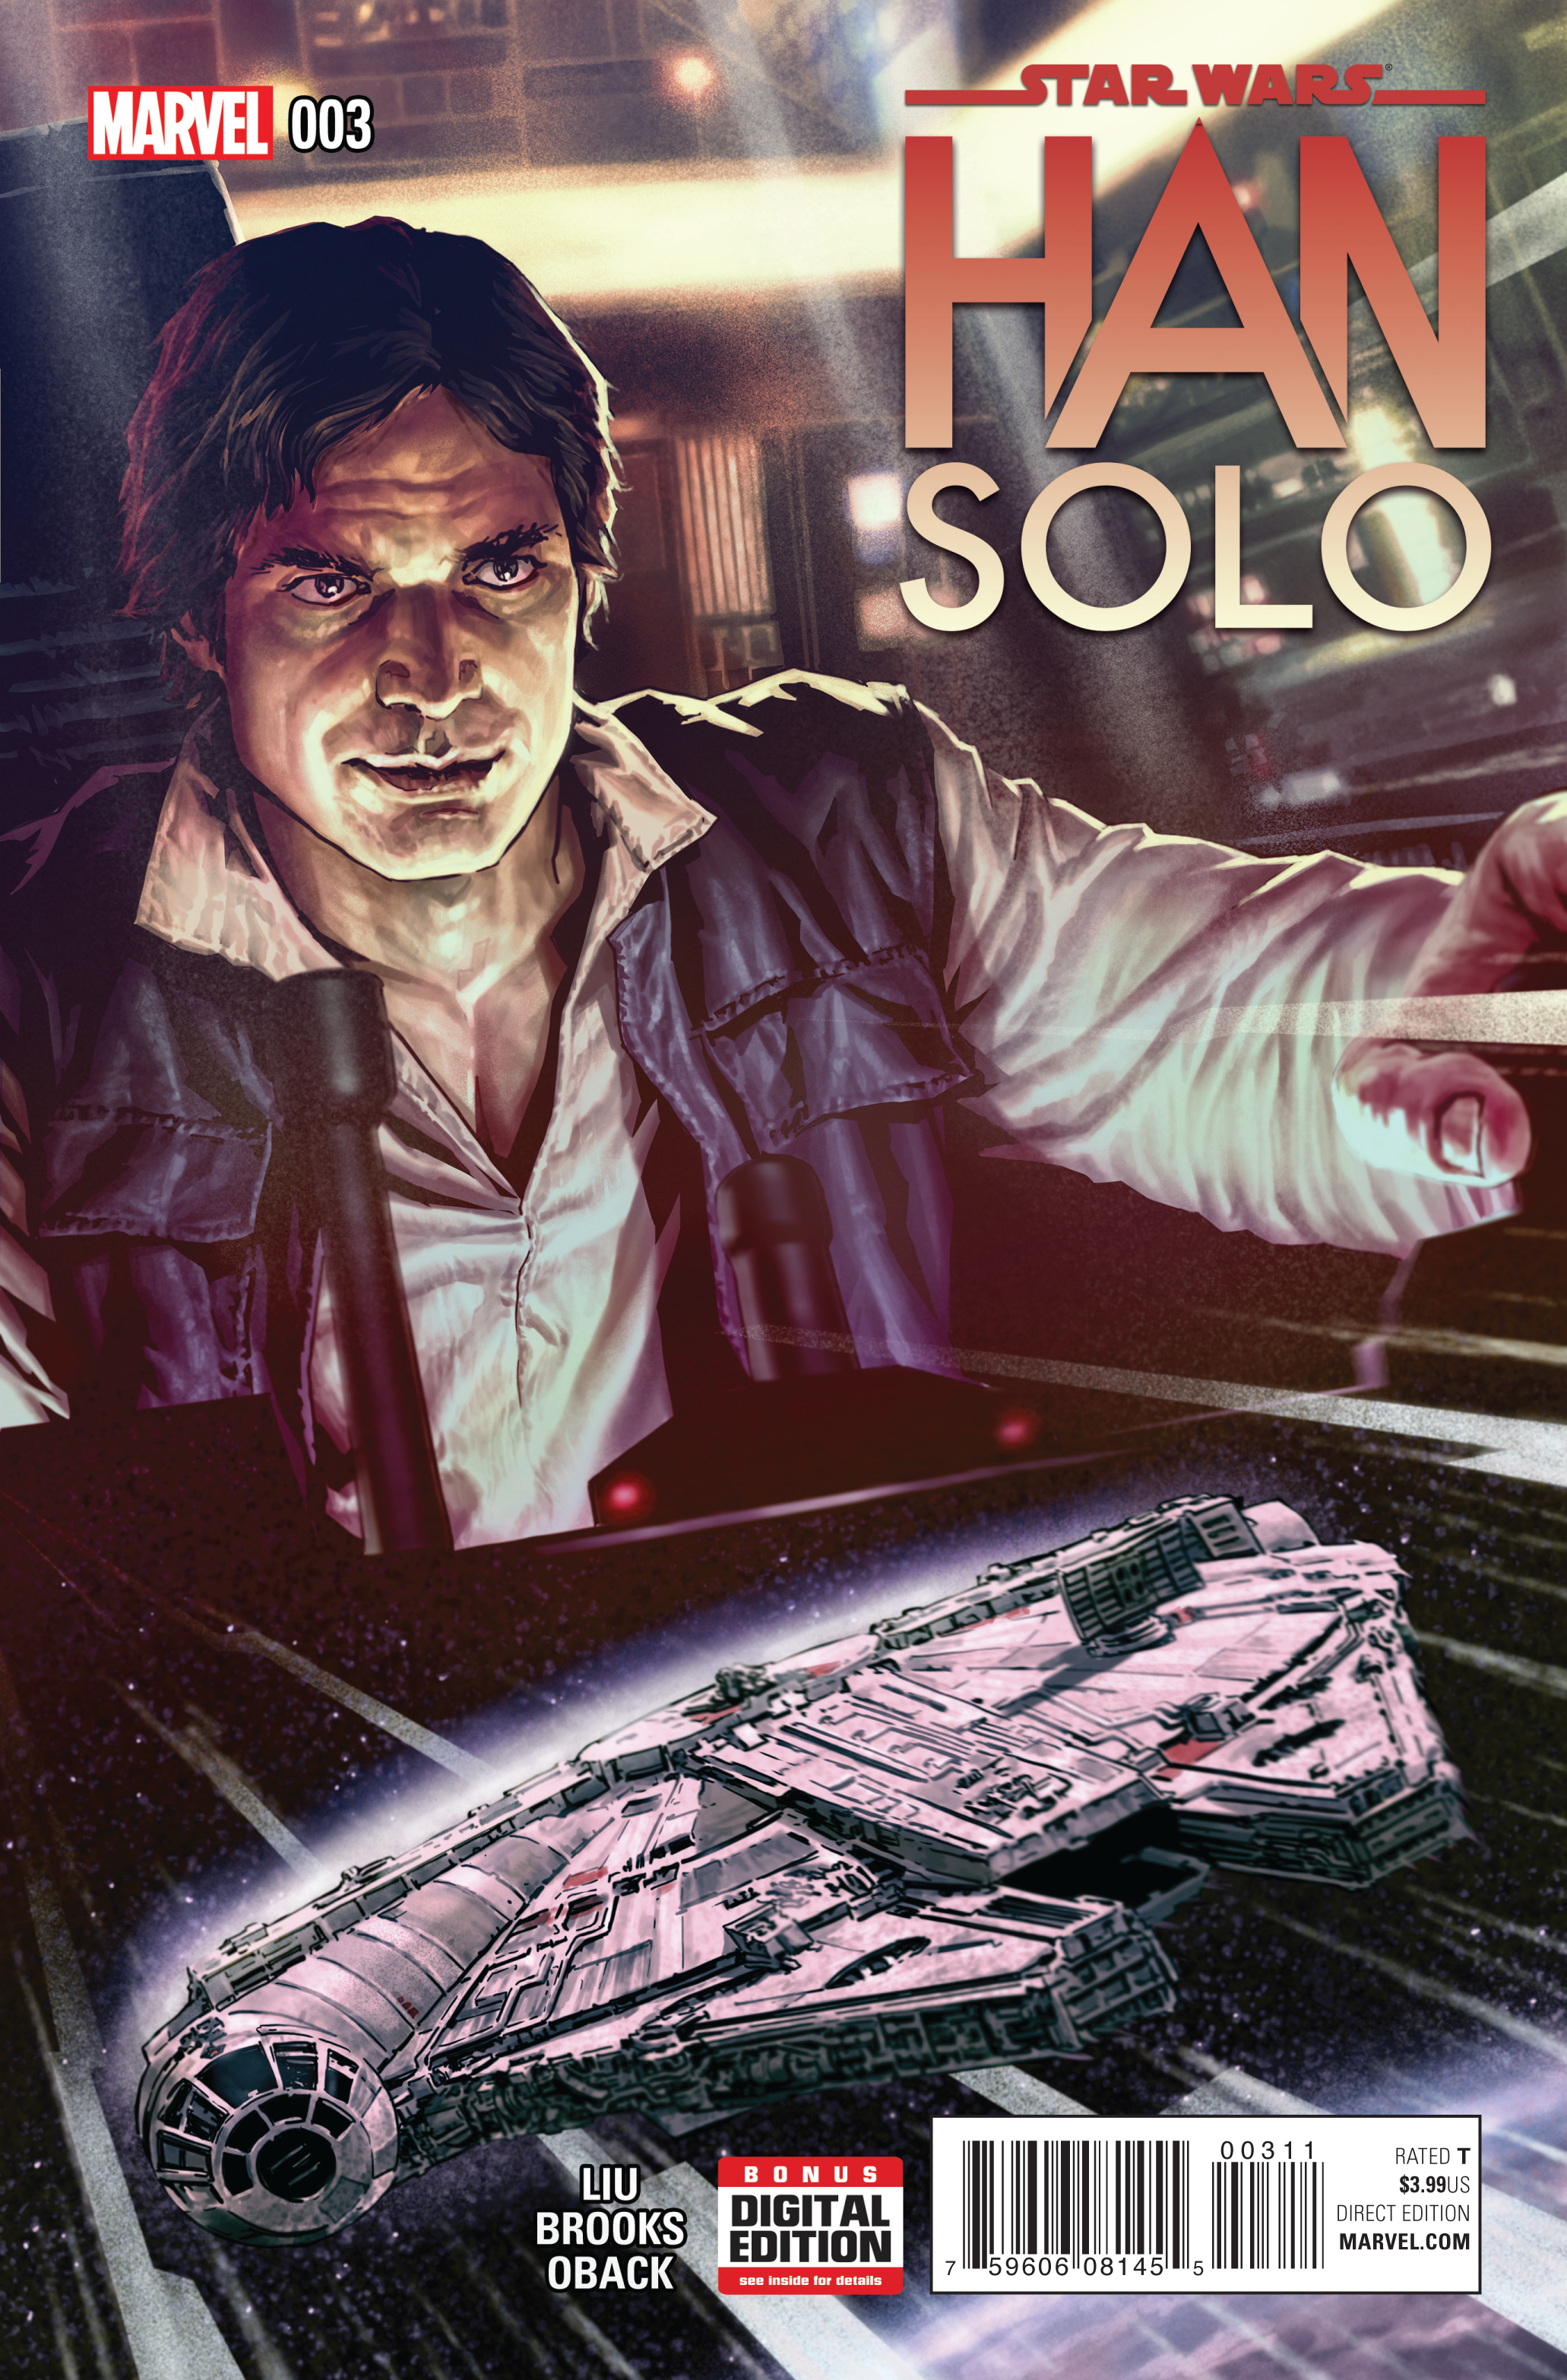 STAR WARS HAN SOLO #3 (OF 5)